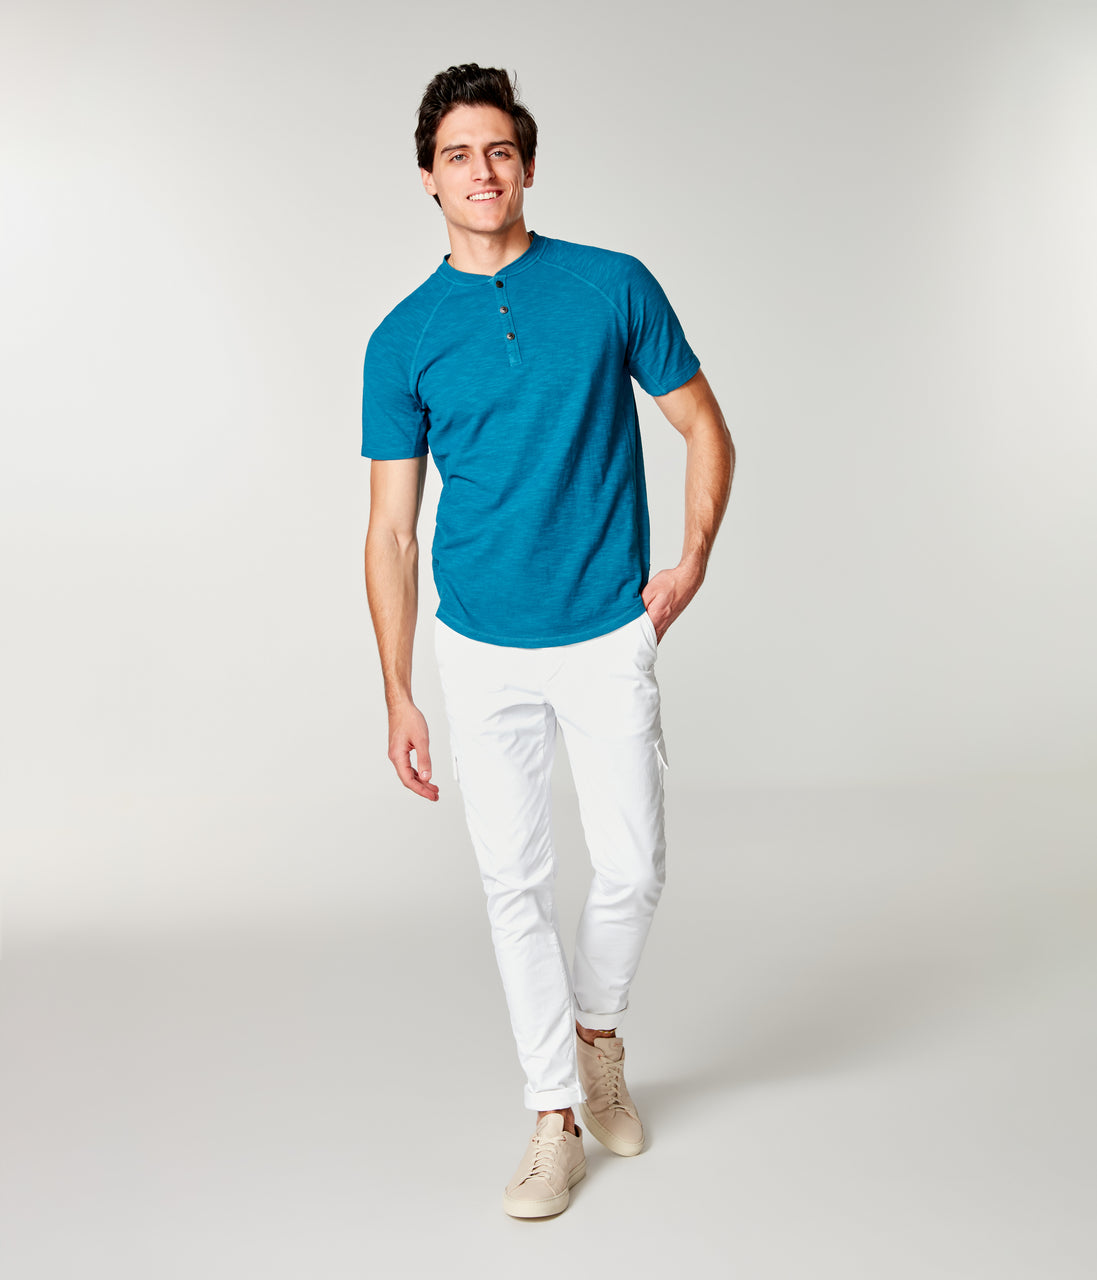 Soft Slub Jersey Legend Henley - Lyons Blue - Good Man Brand - Soft Slub Jersey Legend Henley - Lyons Blue